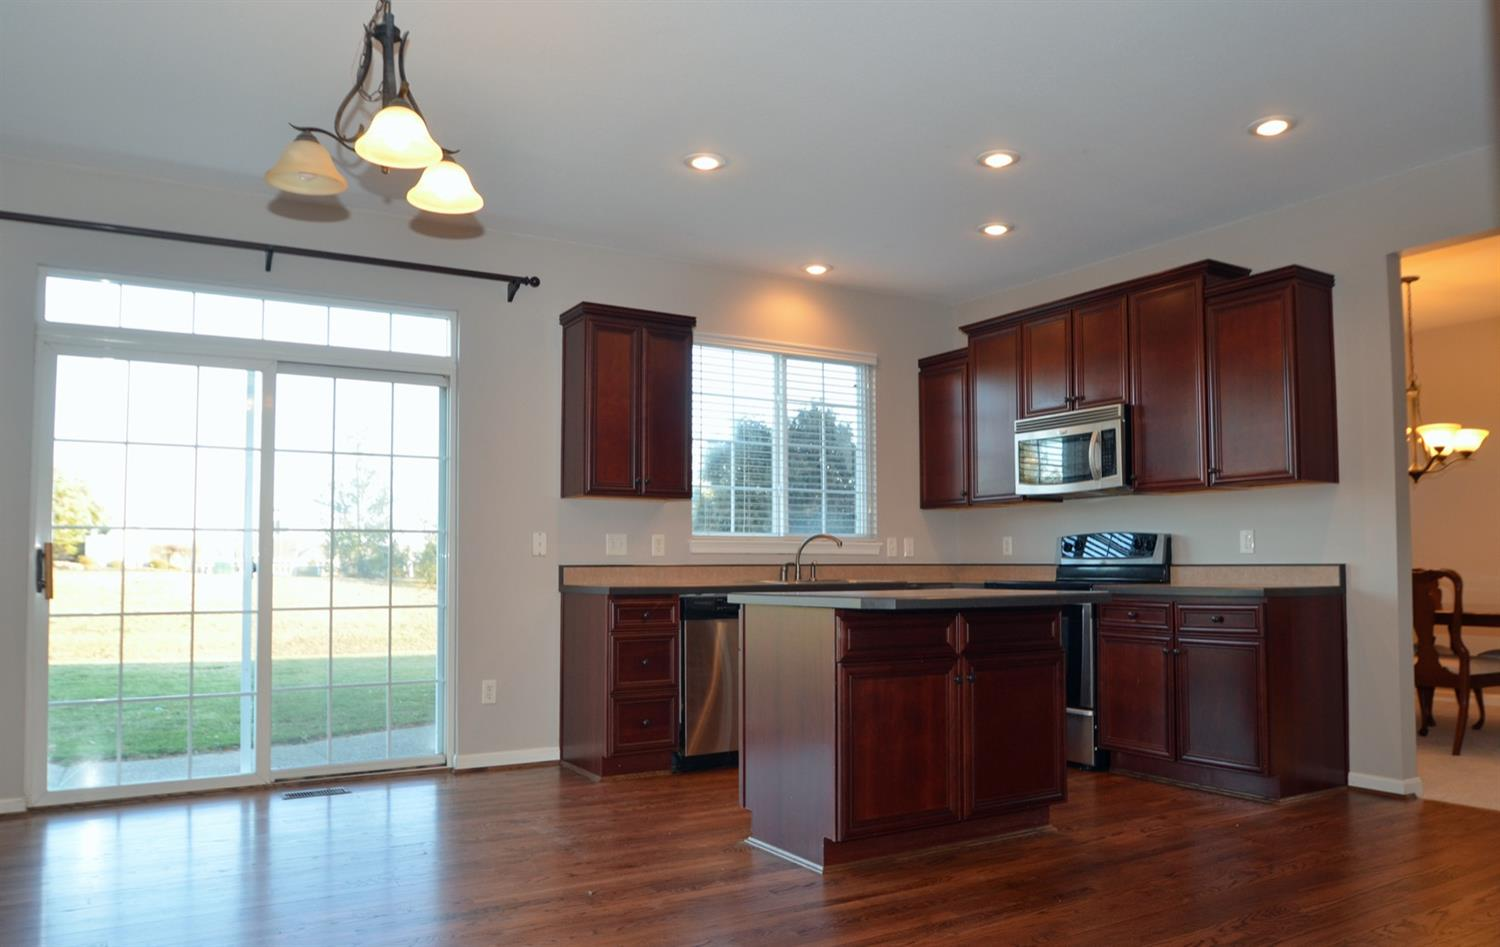 The open plan kitchen features a walkout to the home's patio and yard from the eat-in dining space.